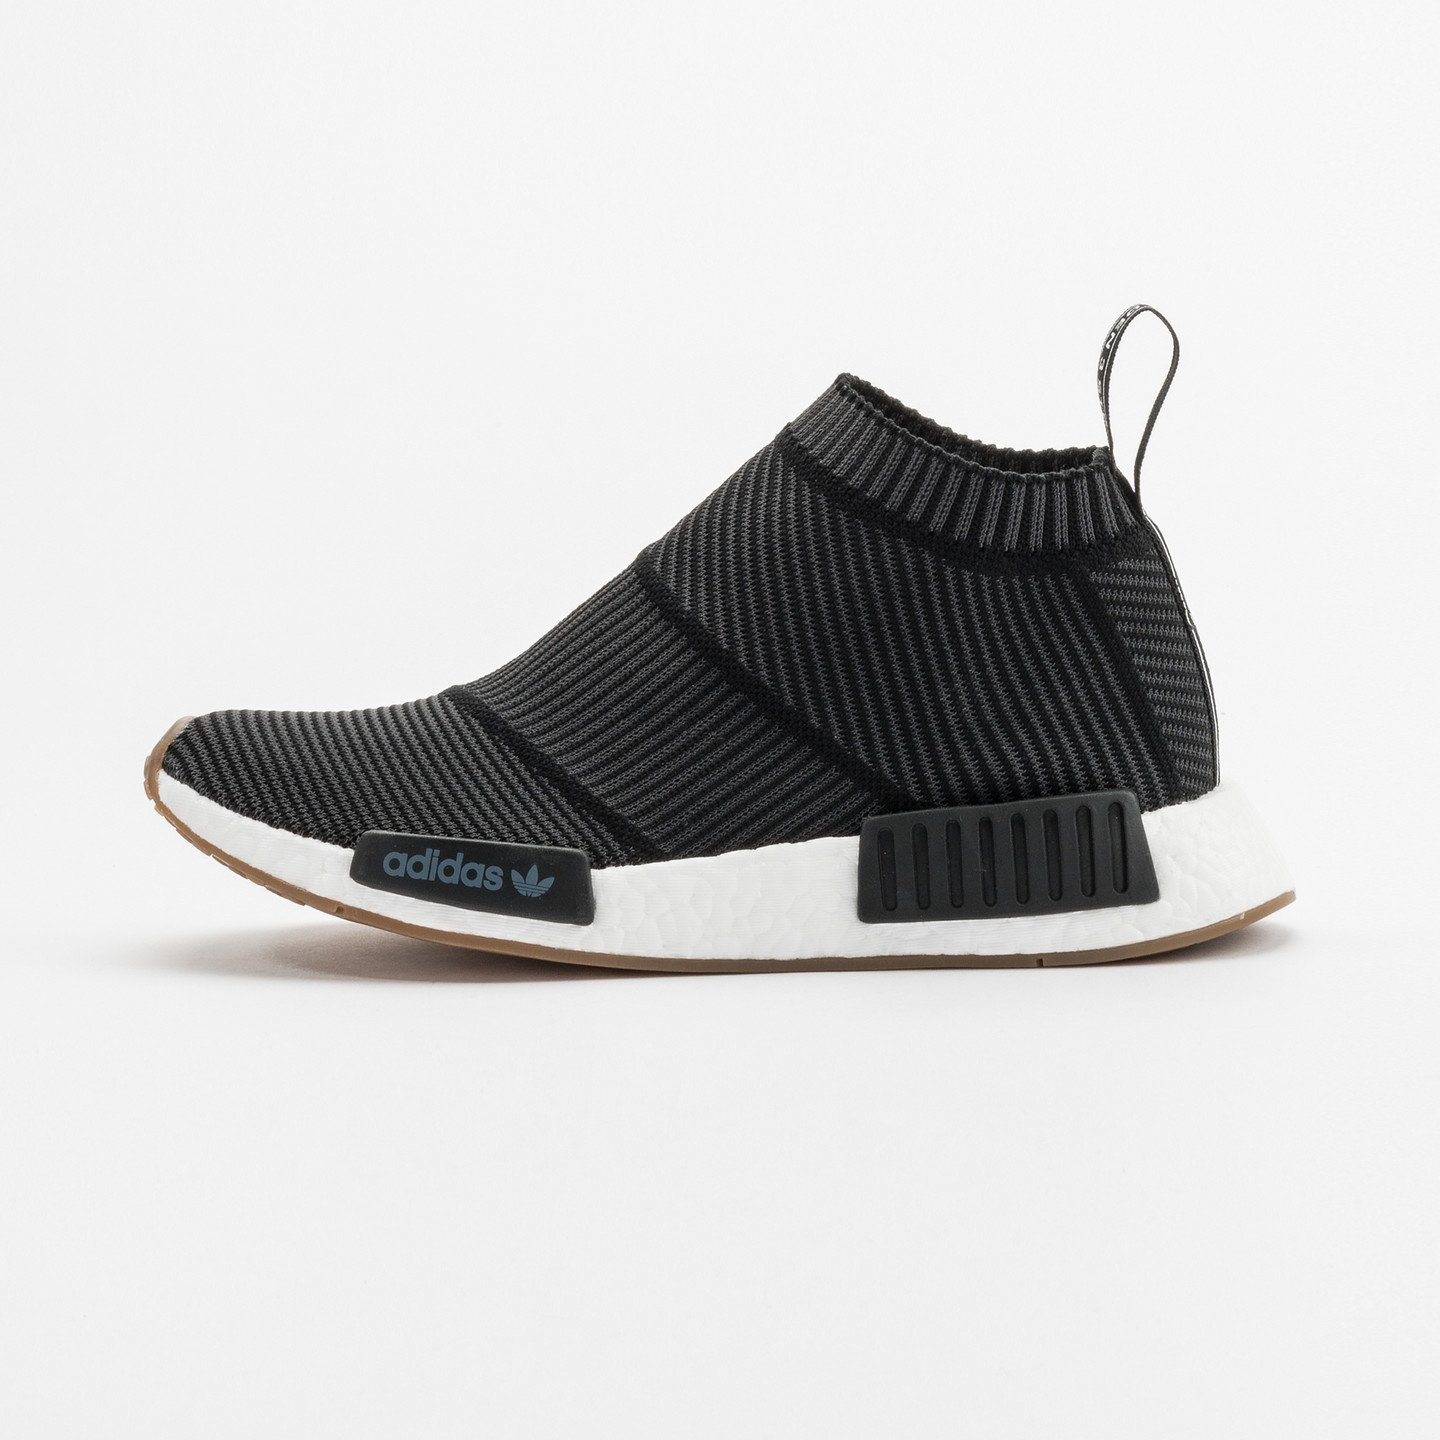 Adidas NMD CS1 City Sock Boost Primeknit Core Black / Gum BA7209-44.66